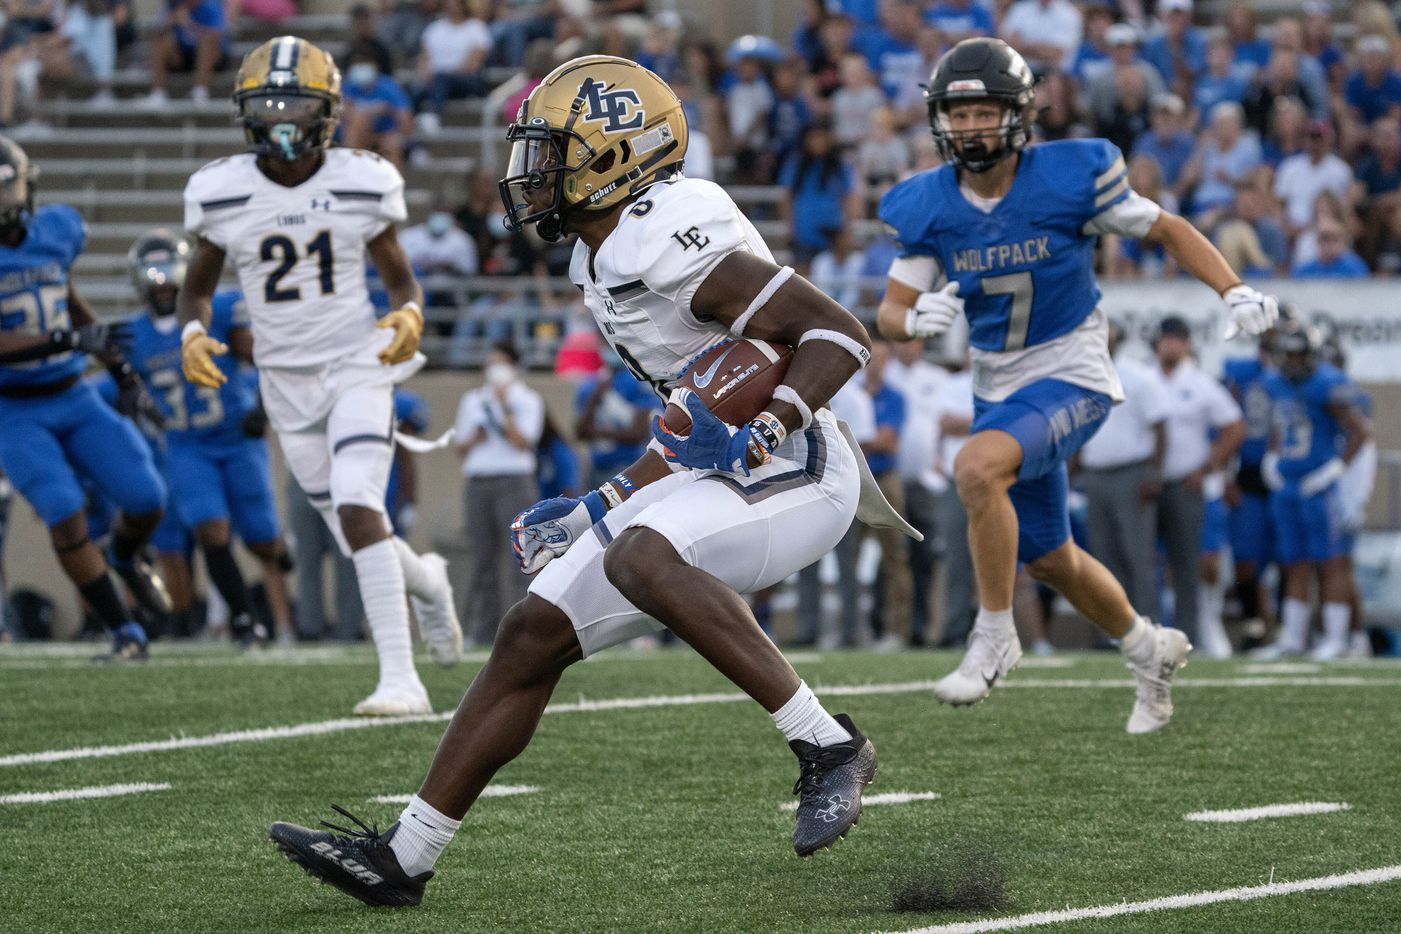 Little Elm senior kick returner Terrance Brooks (8) heads upfield on a kickoff return during the first half of a high school football game against Plano West on Friday, Sept. 10, 2021 at John Clark Stadium in Plano, Texas. (Jeffrey McWhorter/Special Contributor)